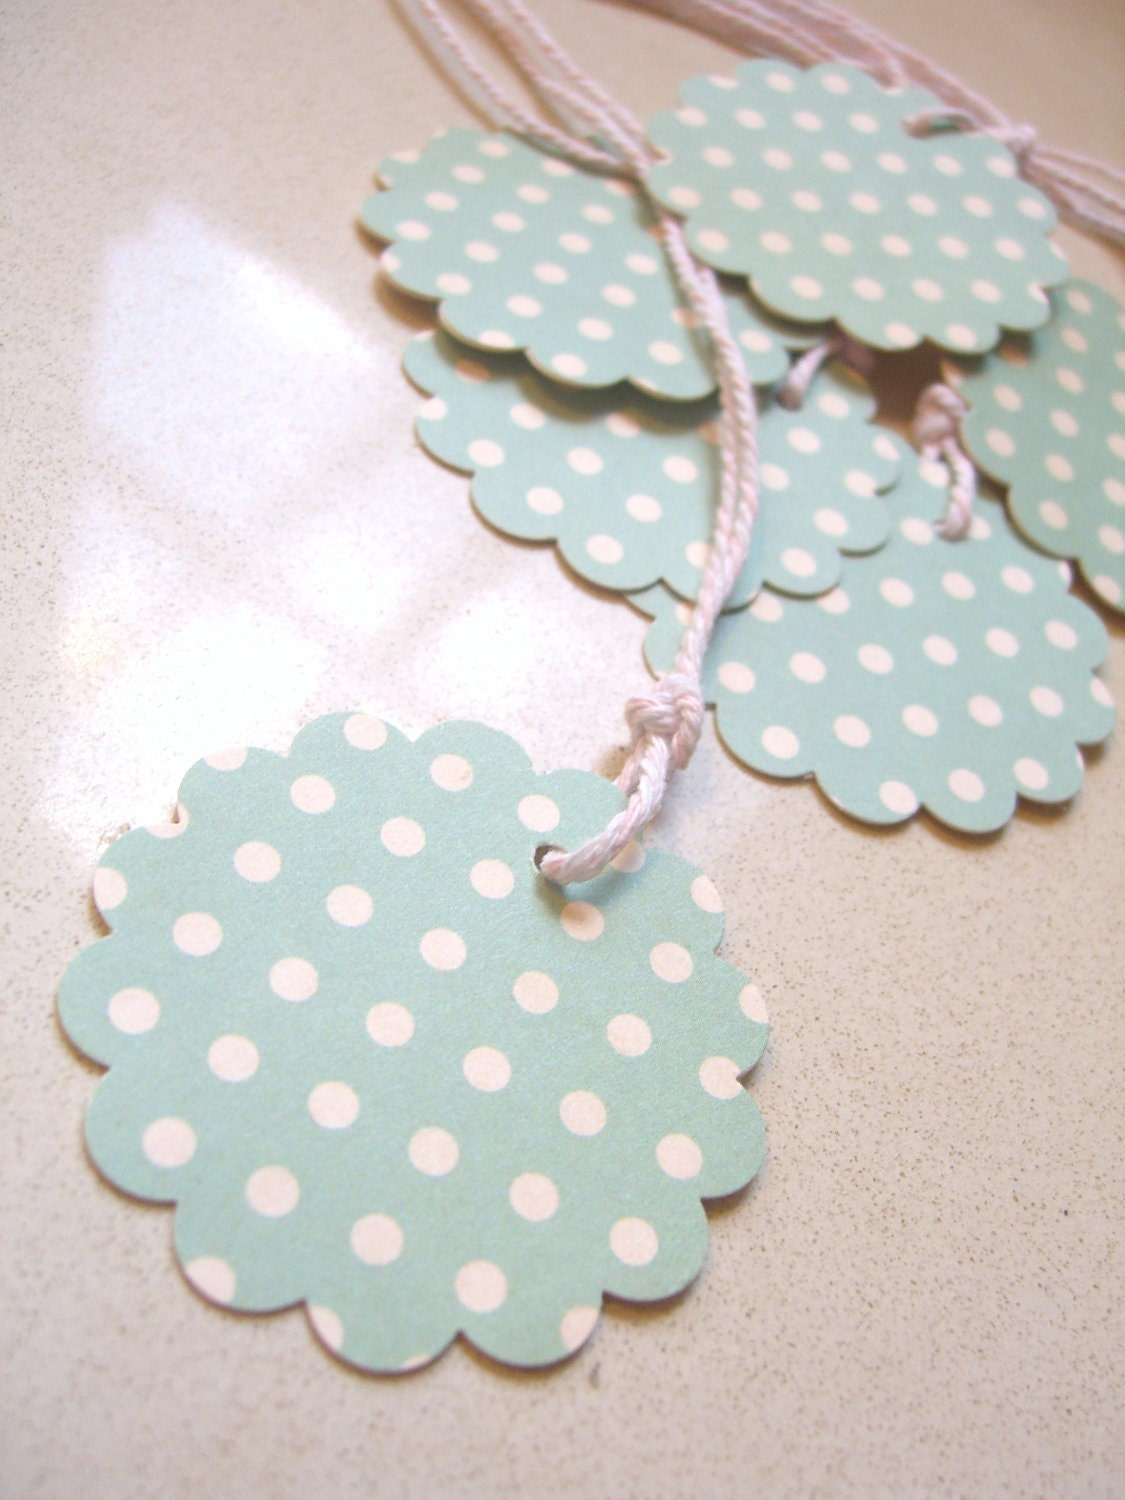 Scalloped Gift Tag - Vintage teal